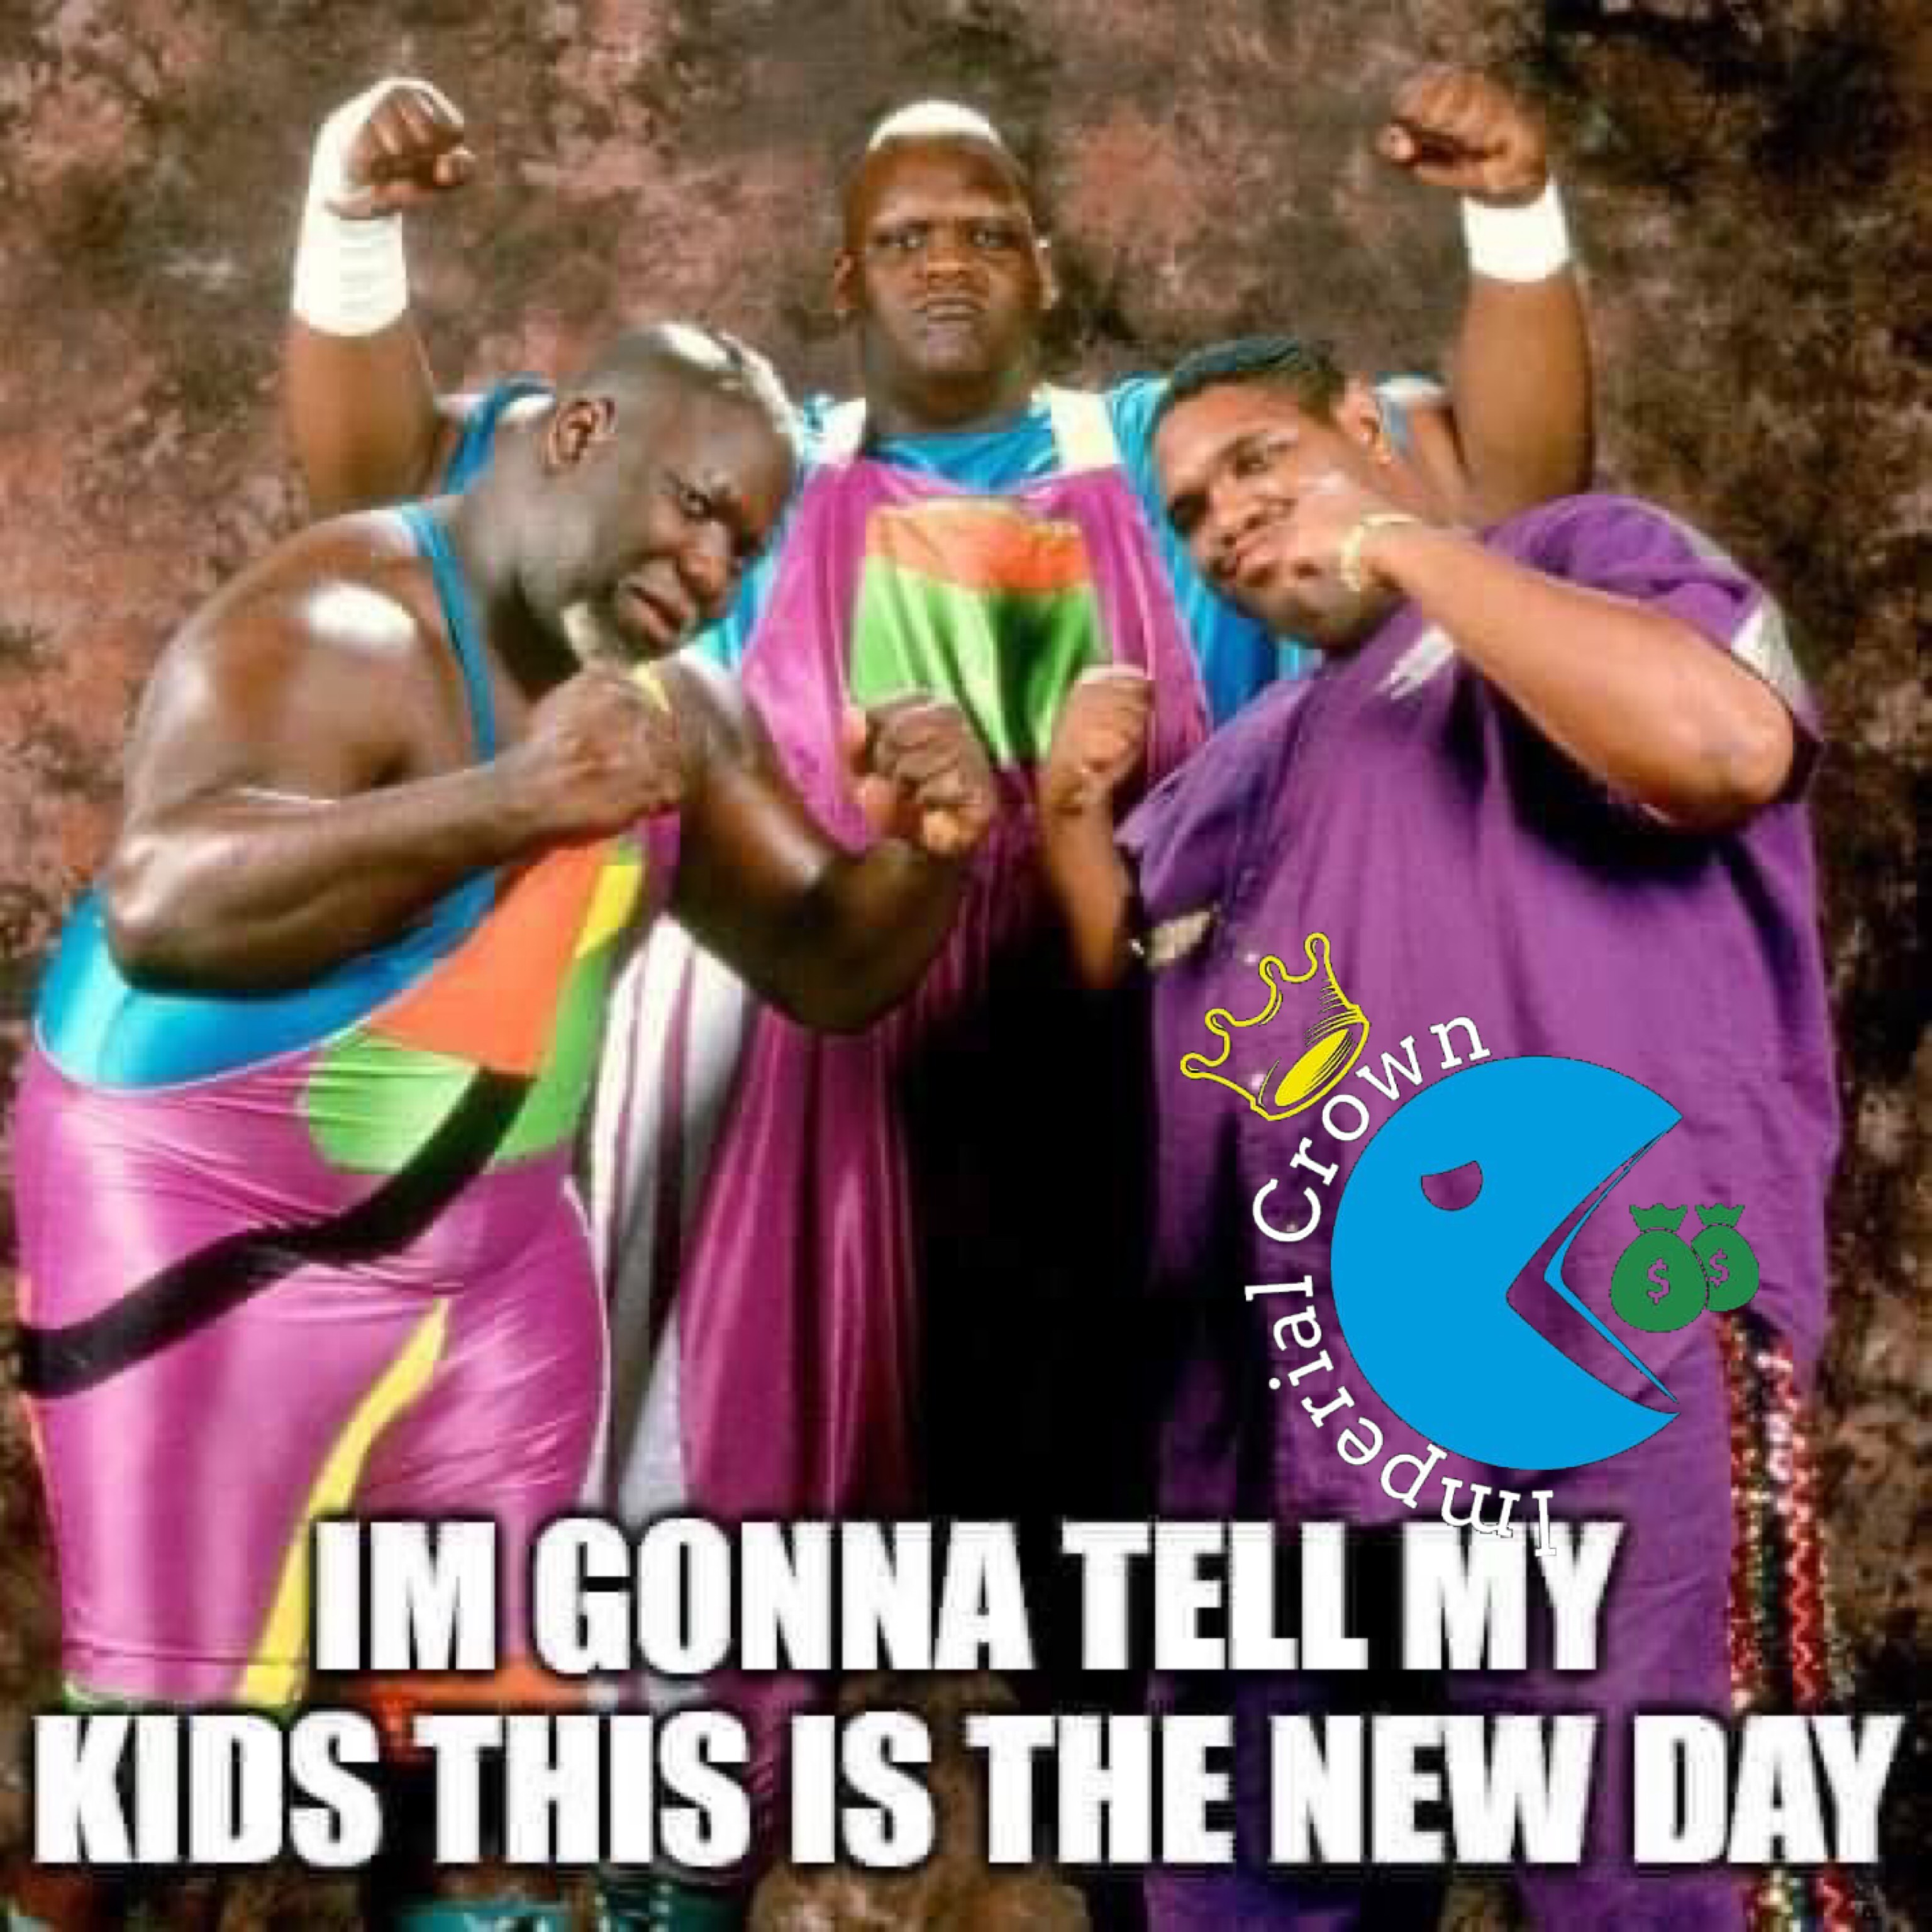 I'm gonna tell my kids this is the new day